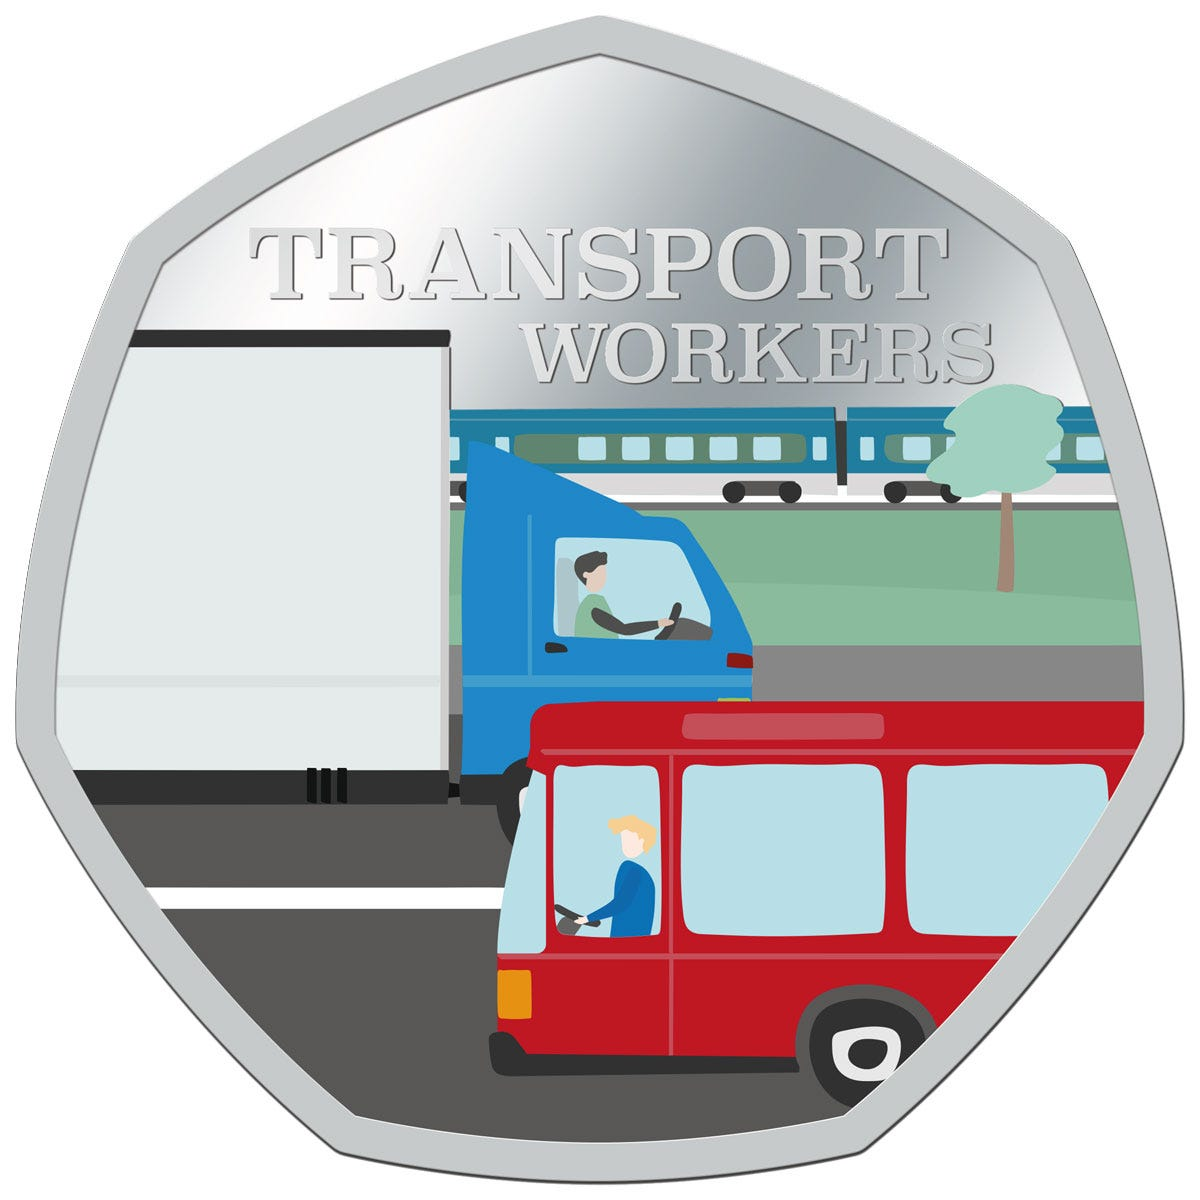 Thank-you Transport Workers